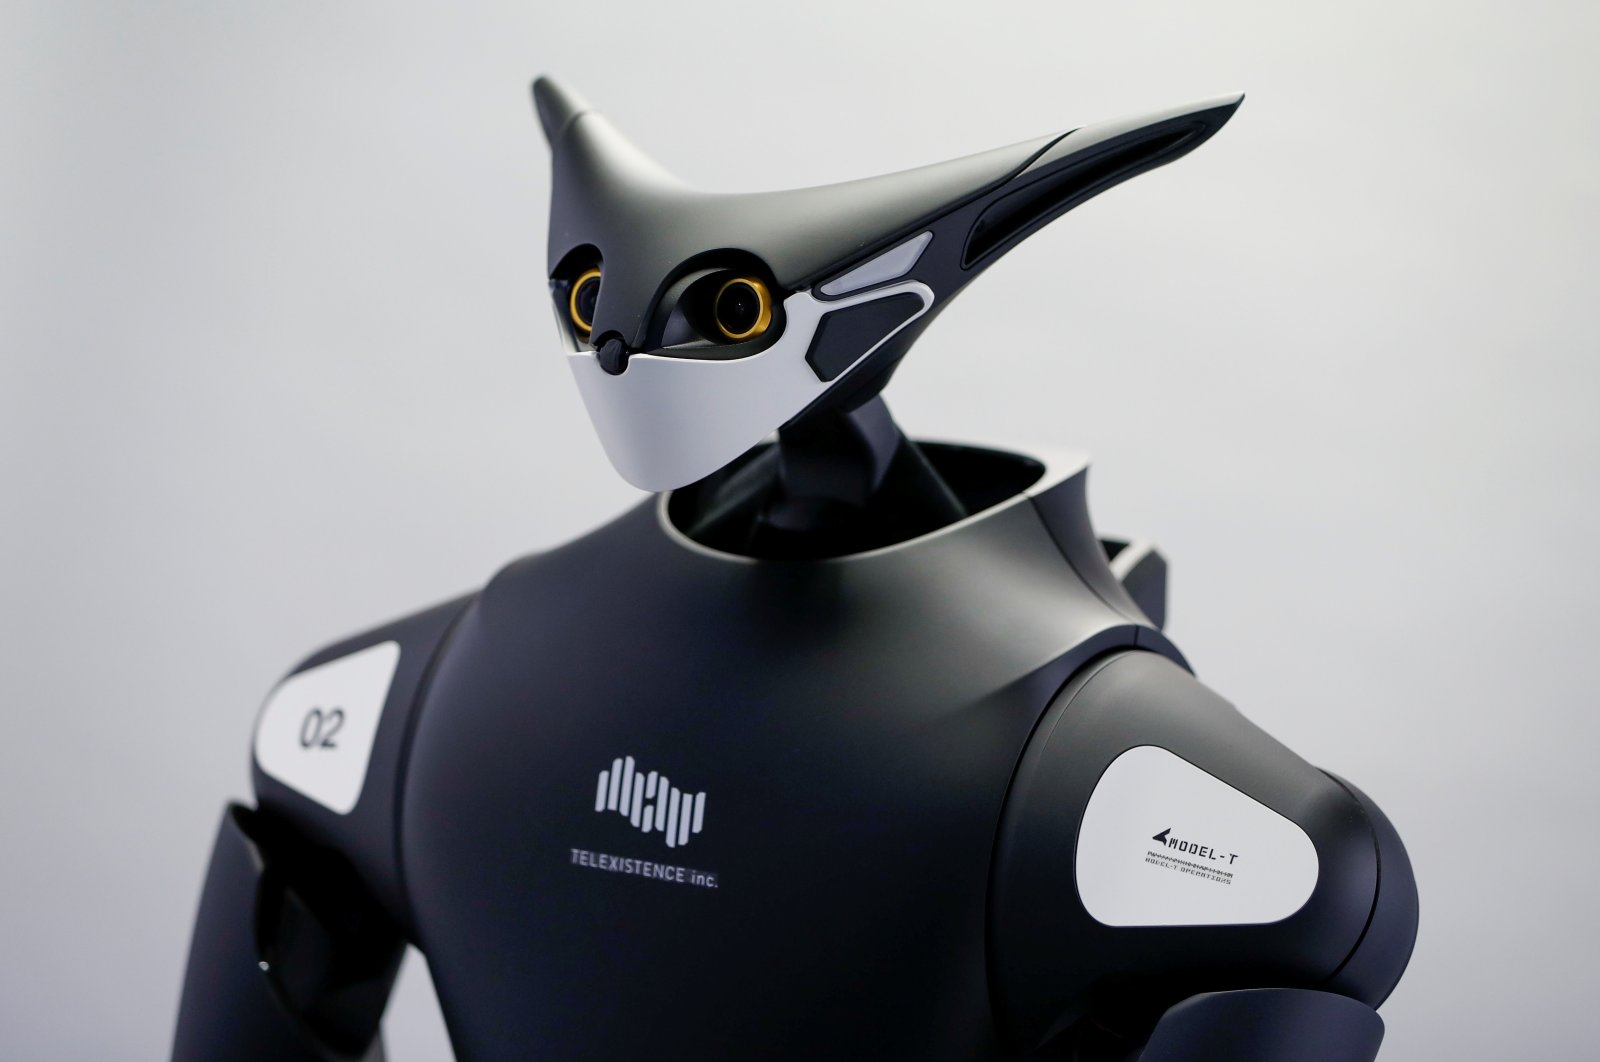 Telexistence's shelf-stocking avatar robot, designed to resemble a kangaroo and developed to work in a convenience store, is seen during a photo opportunity ahead of its unveiling in Tokyo, Japan on July 3, 2020. (Reuters Photo)